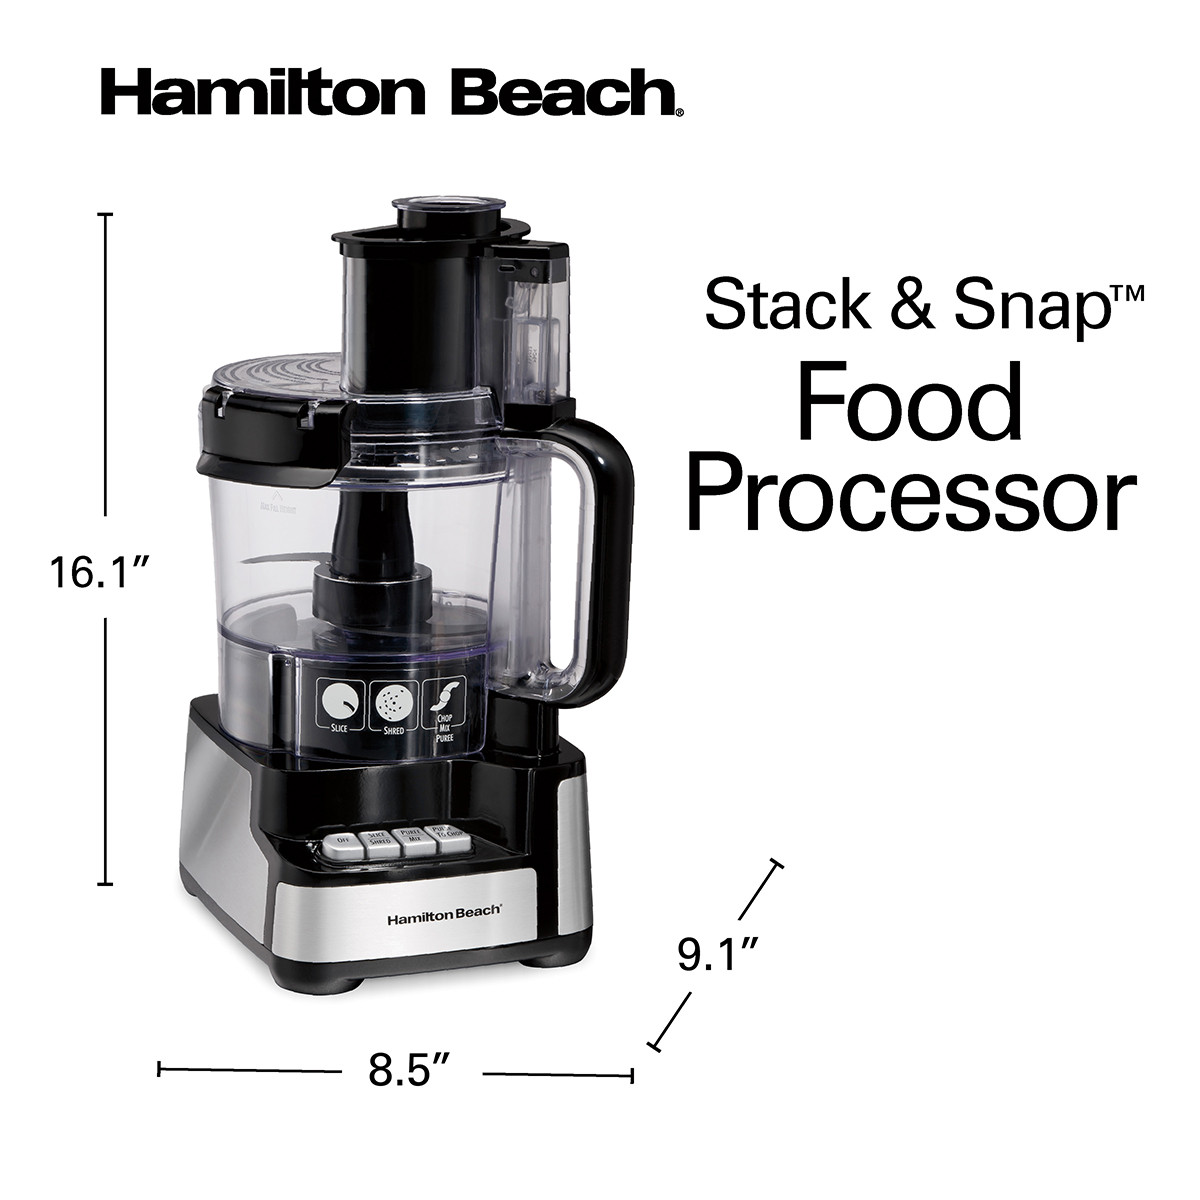 Hamilton Beach 12 Cup Stack & Snap™ Food Processor, Black and Stainless - 70728